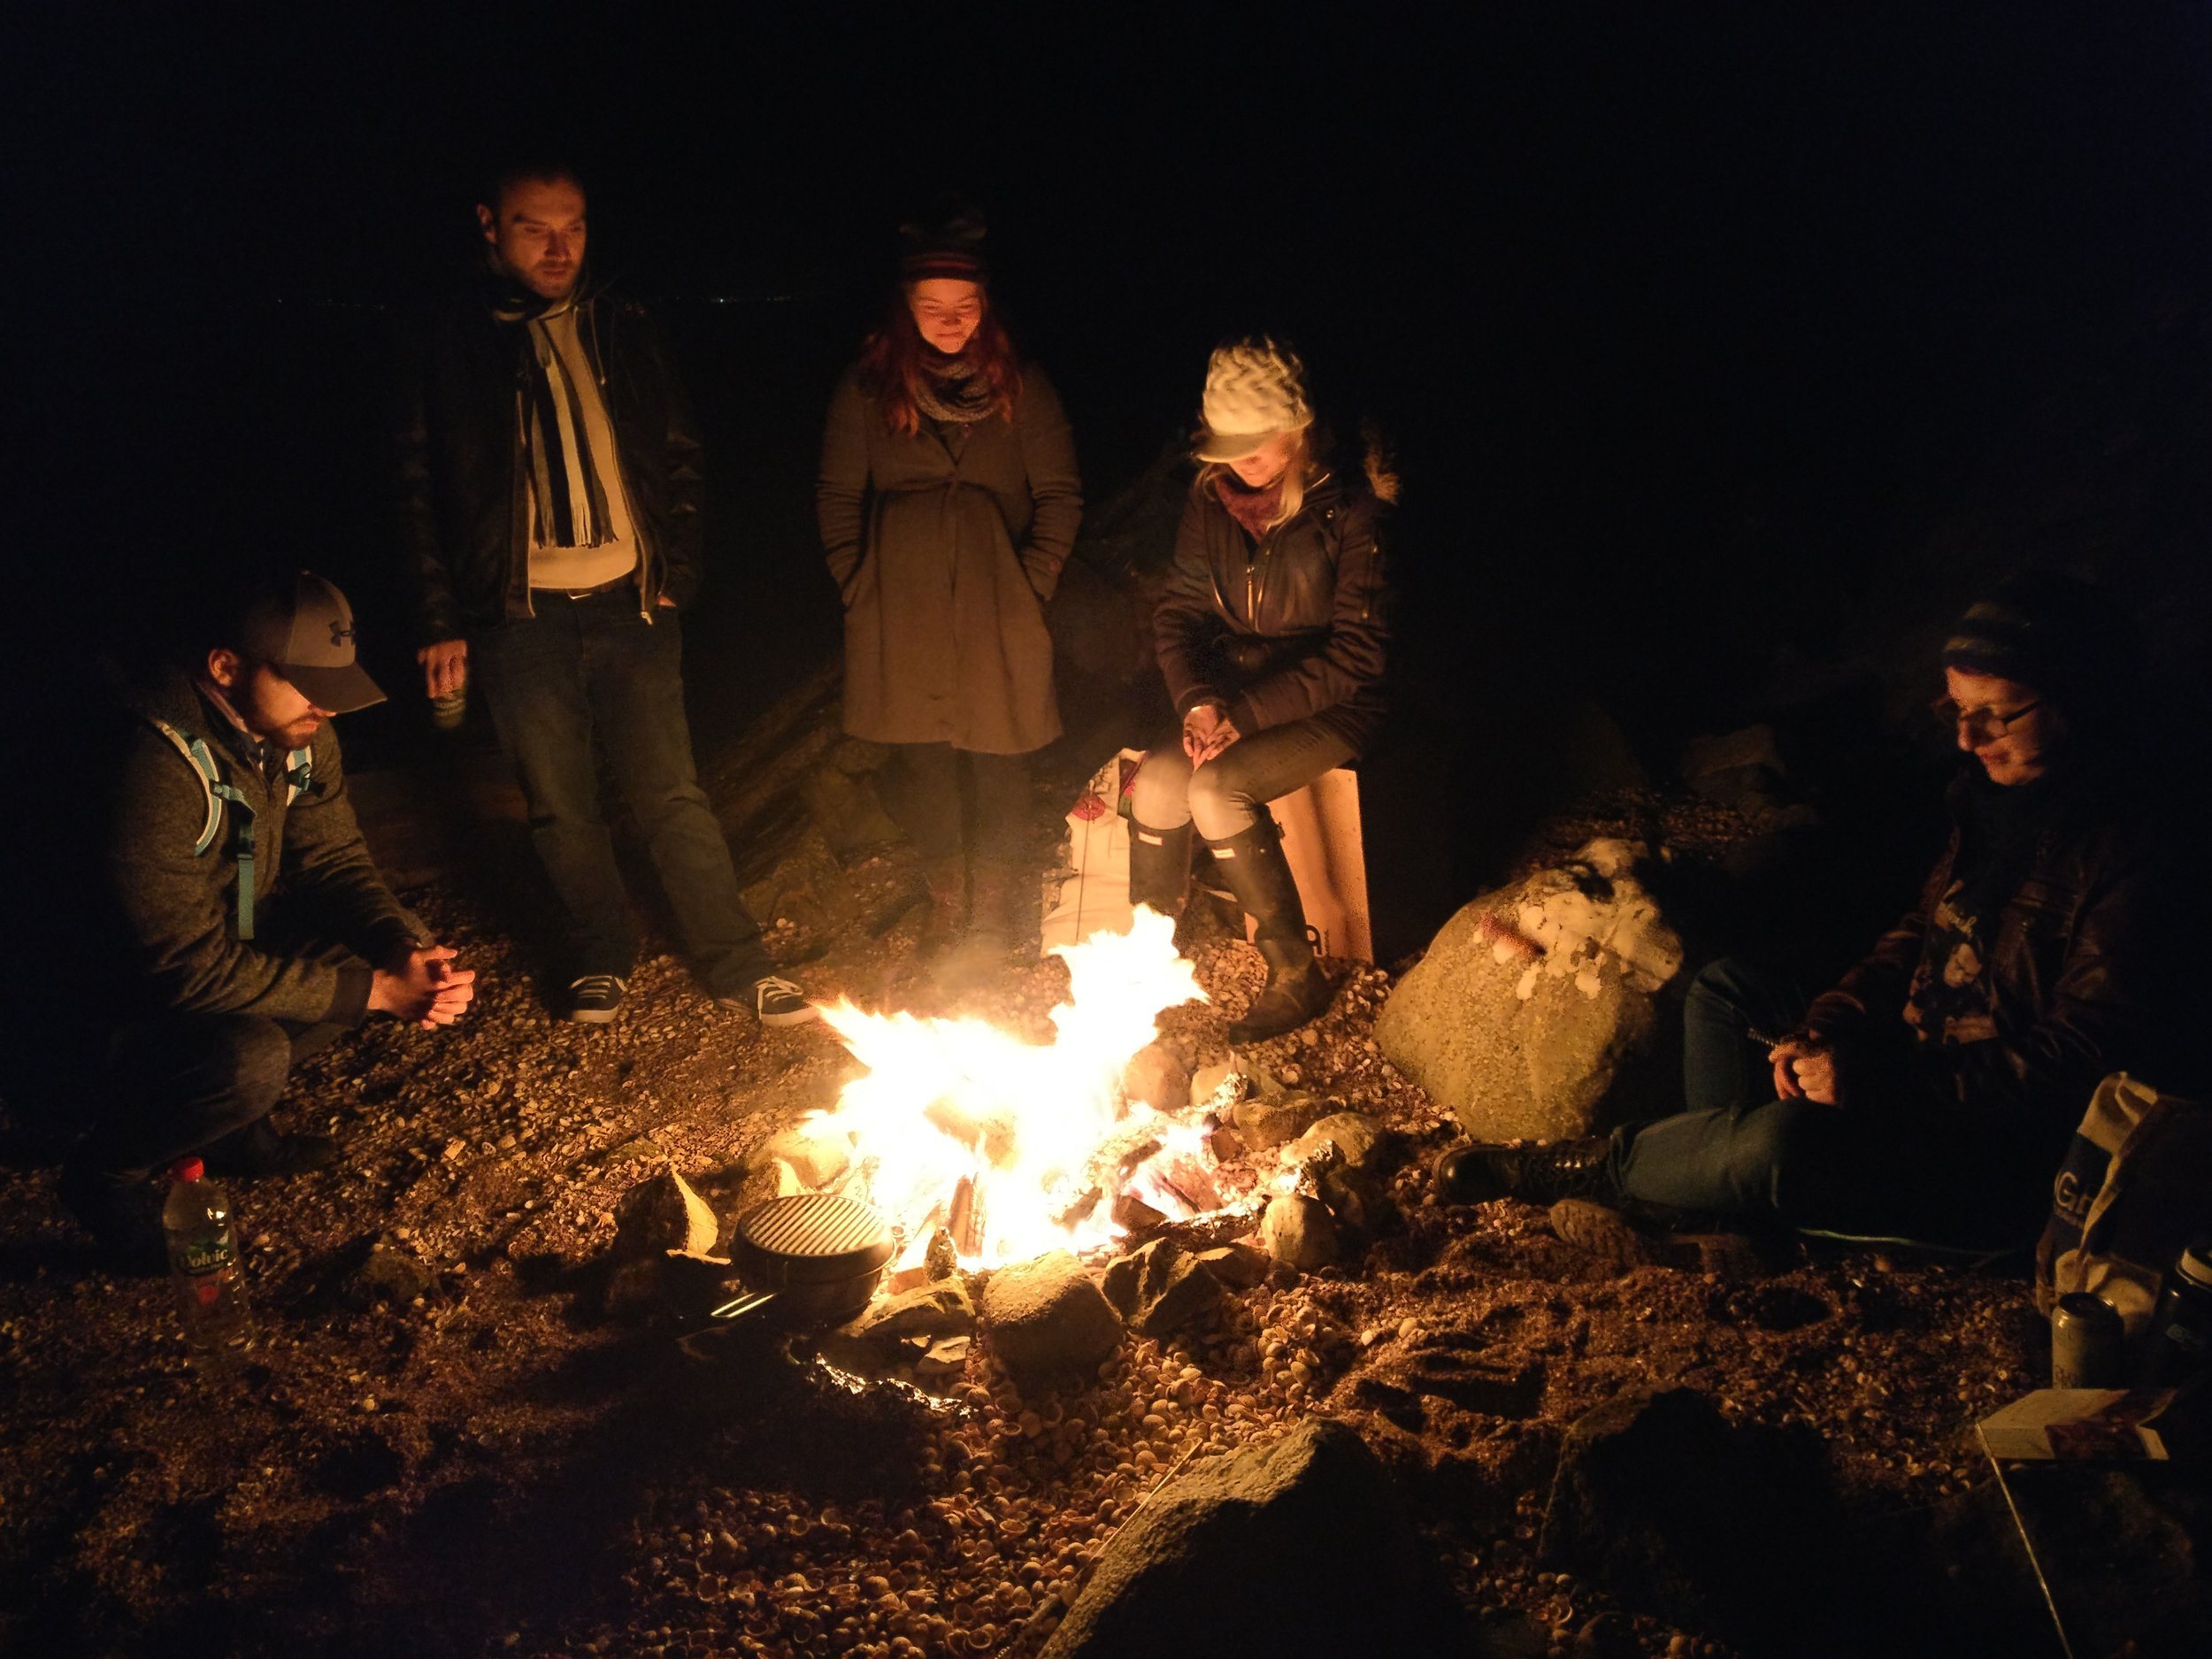 Camp fire at the beach (by E.Loose)